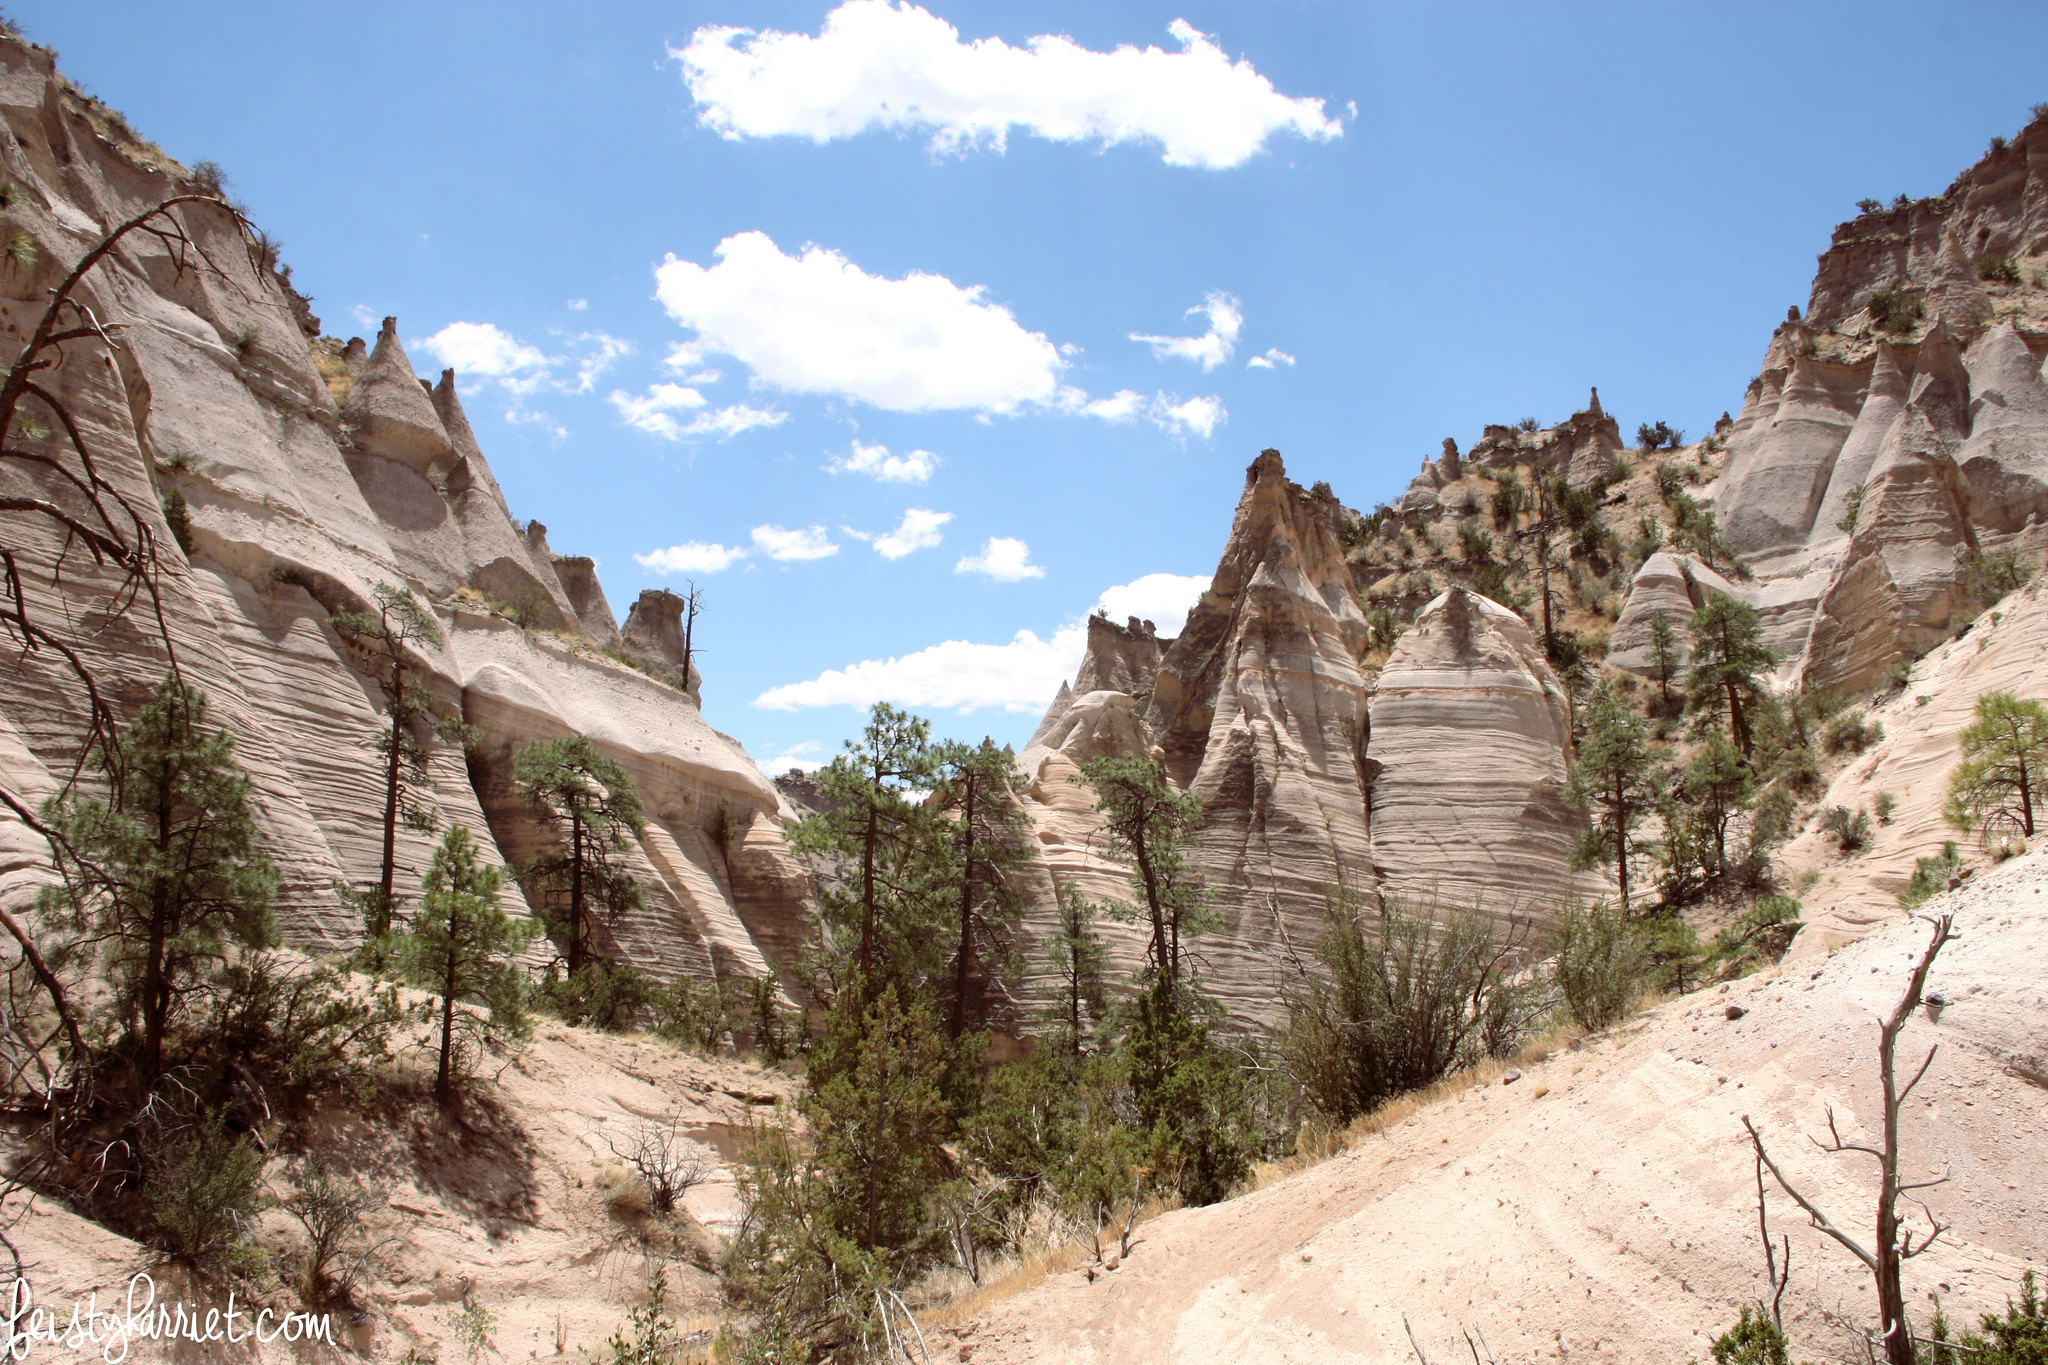 Kasha-Katuwe Tent Rocks NM_feistyharriet_July 2016 (8)